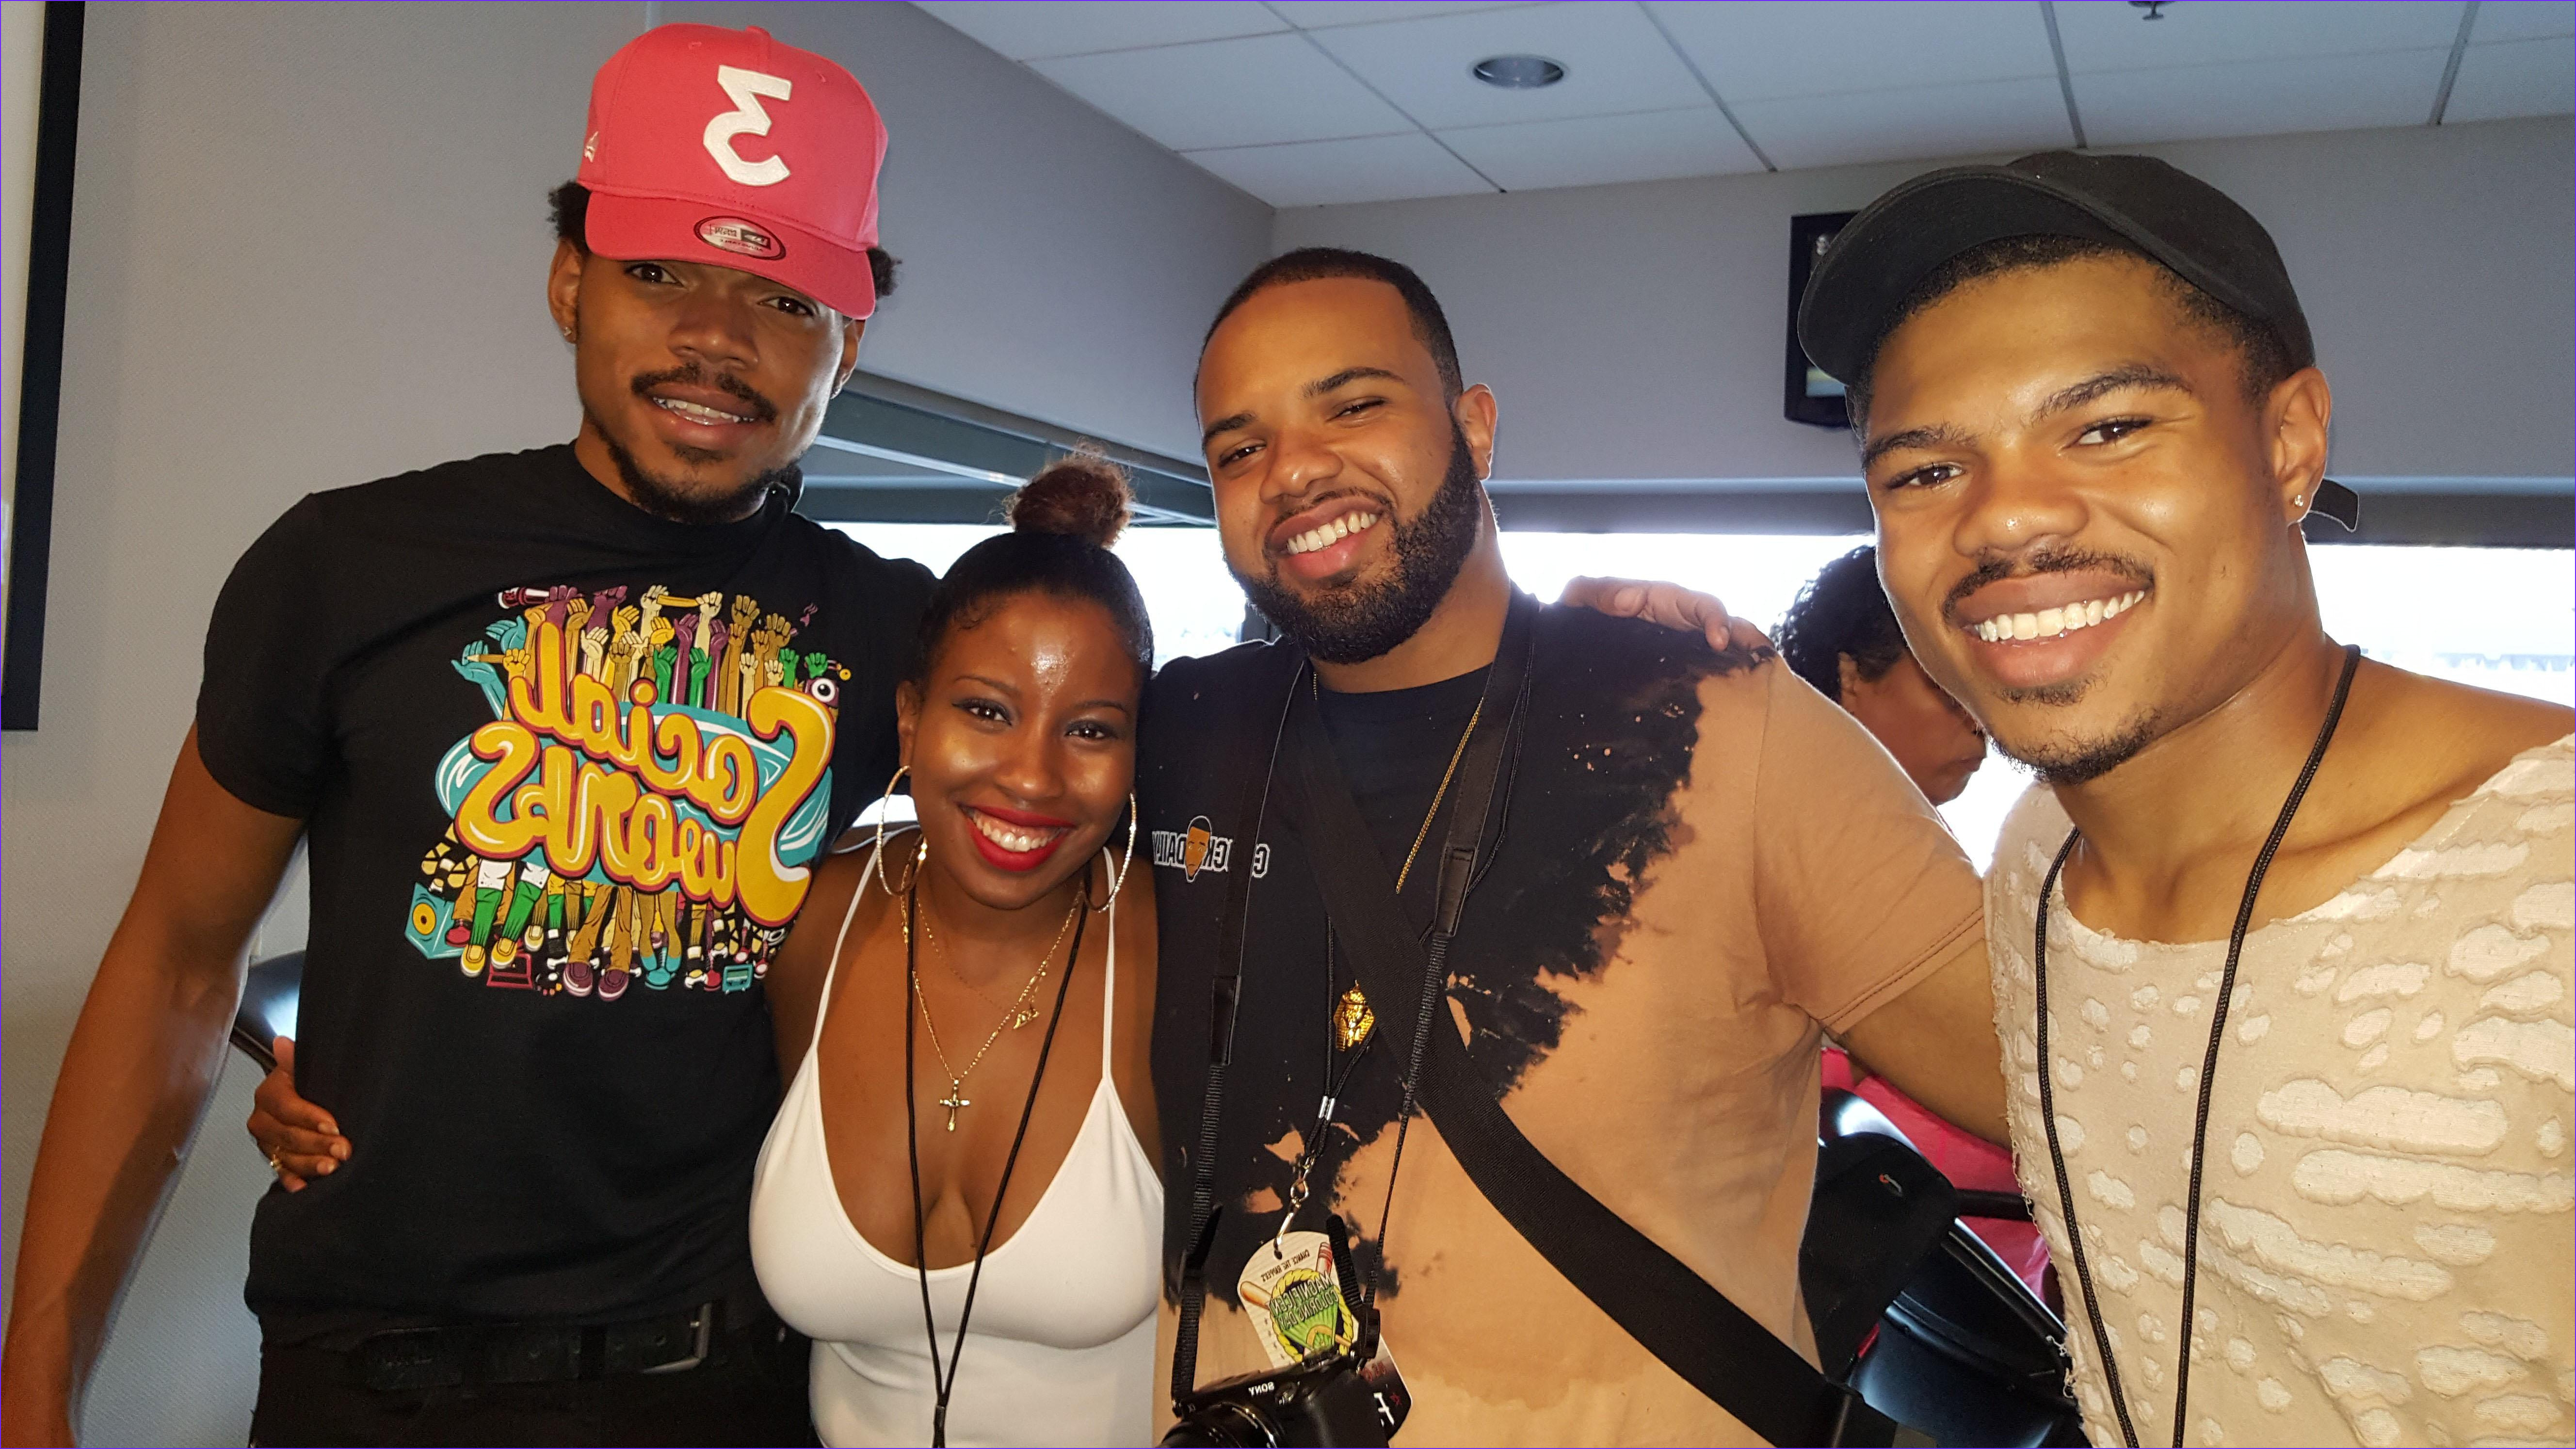 chance rapper s 3 grammy awards incredible unfathomable